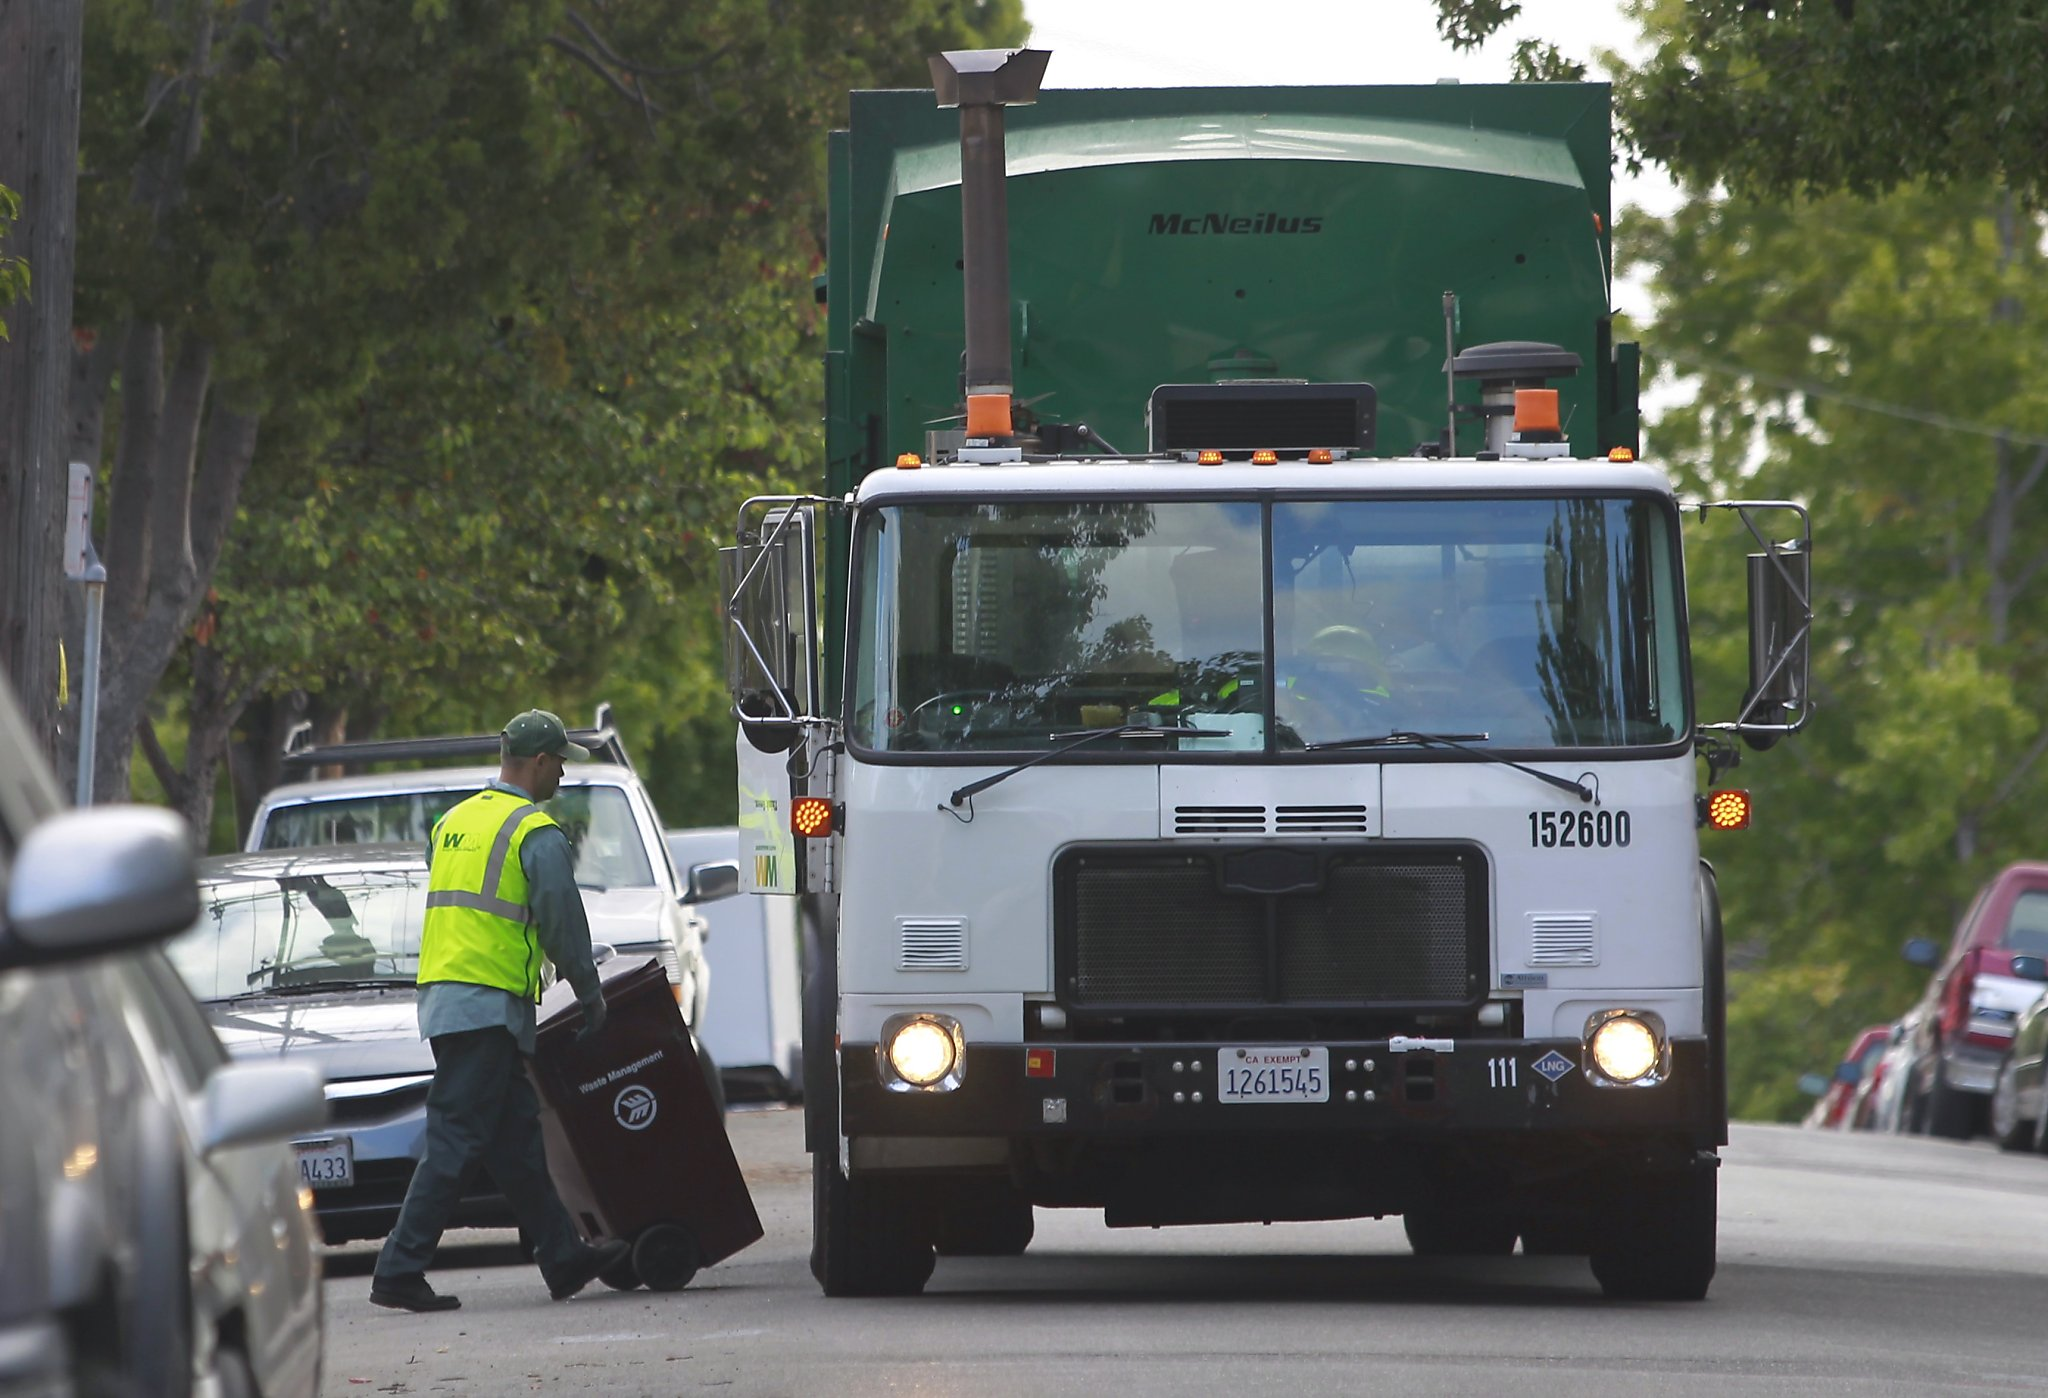 Waste Management sues Oakland over $1 billion trash contract - SFGate